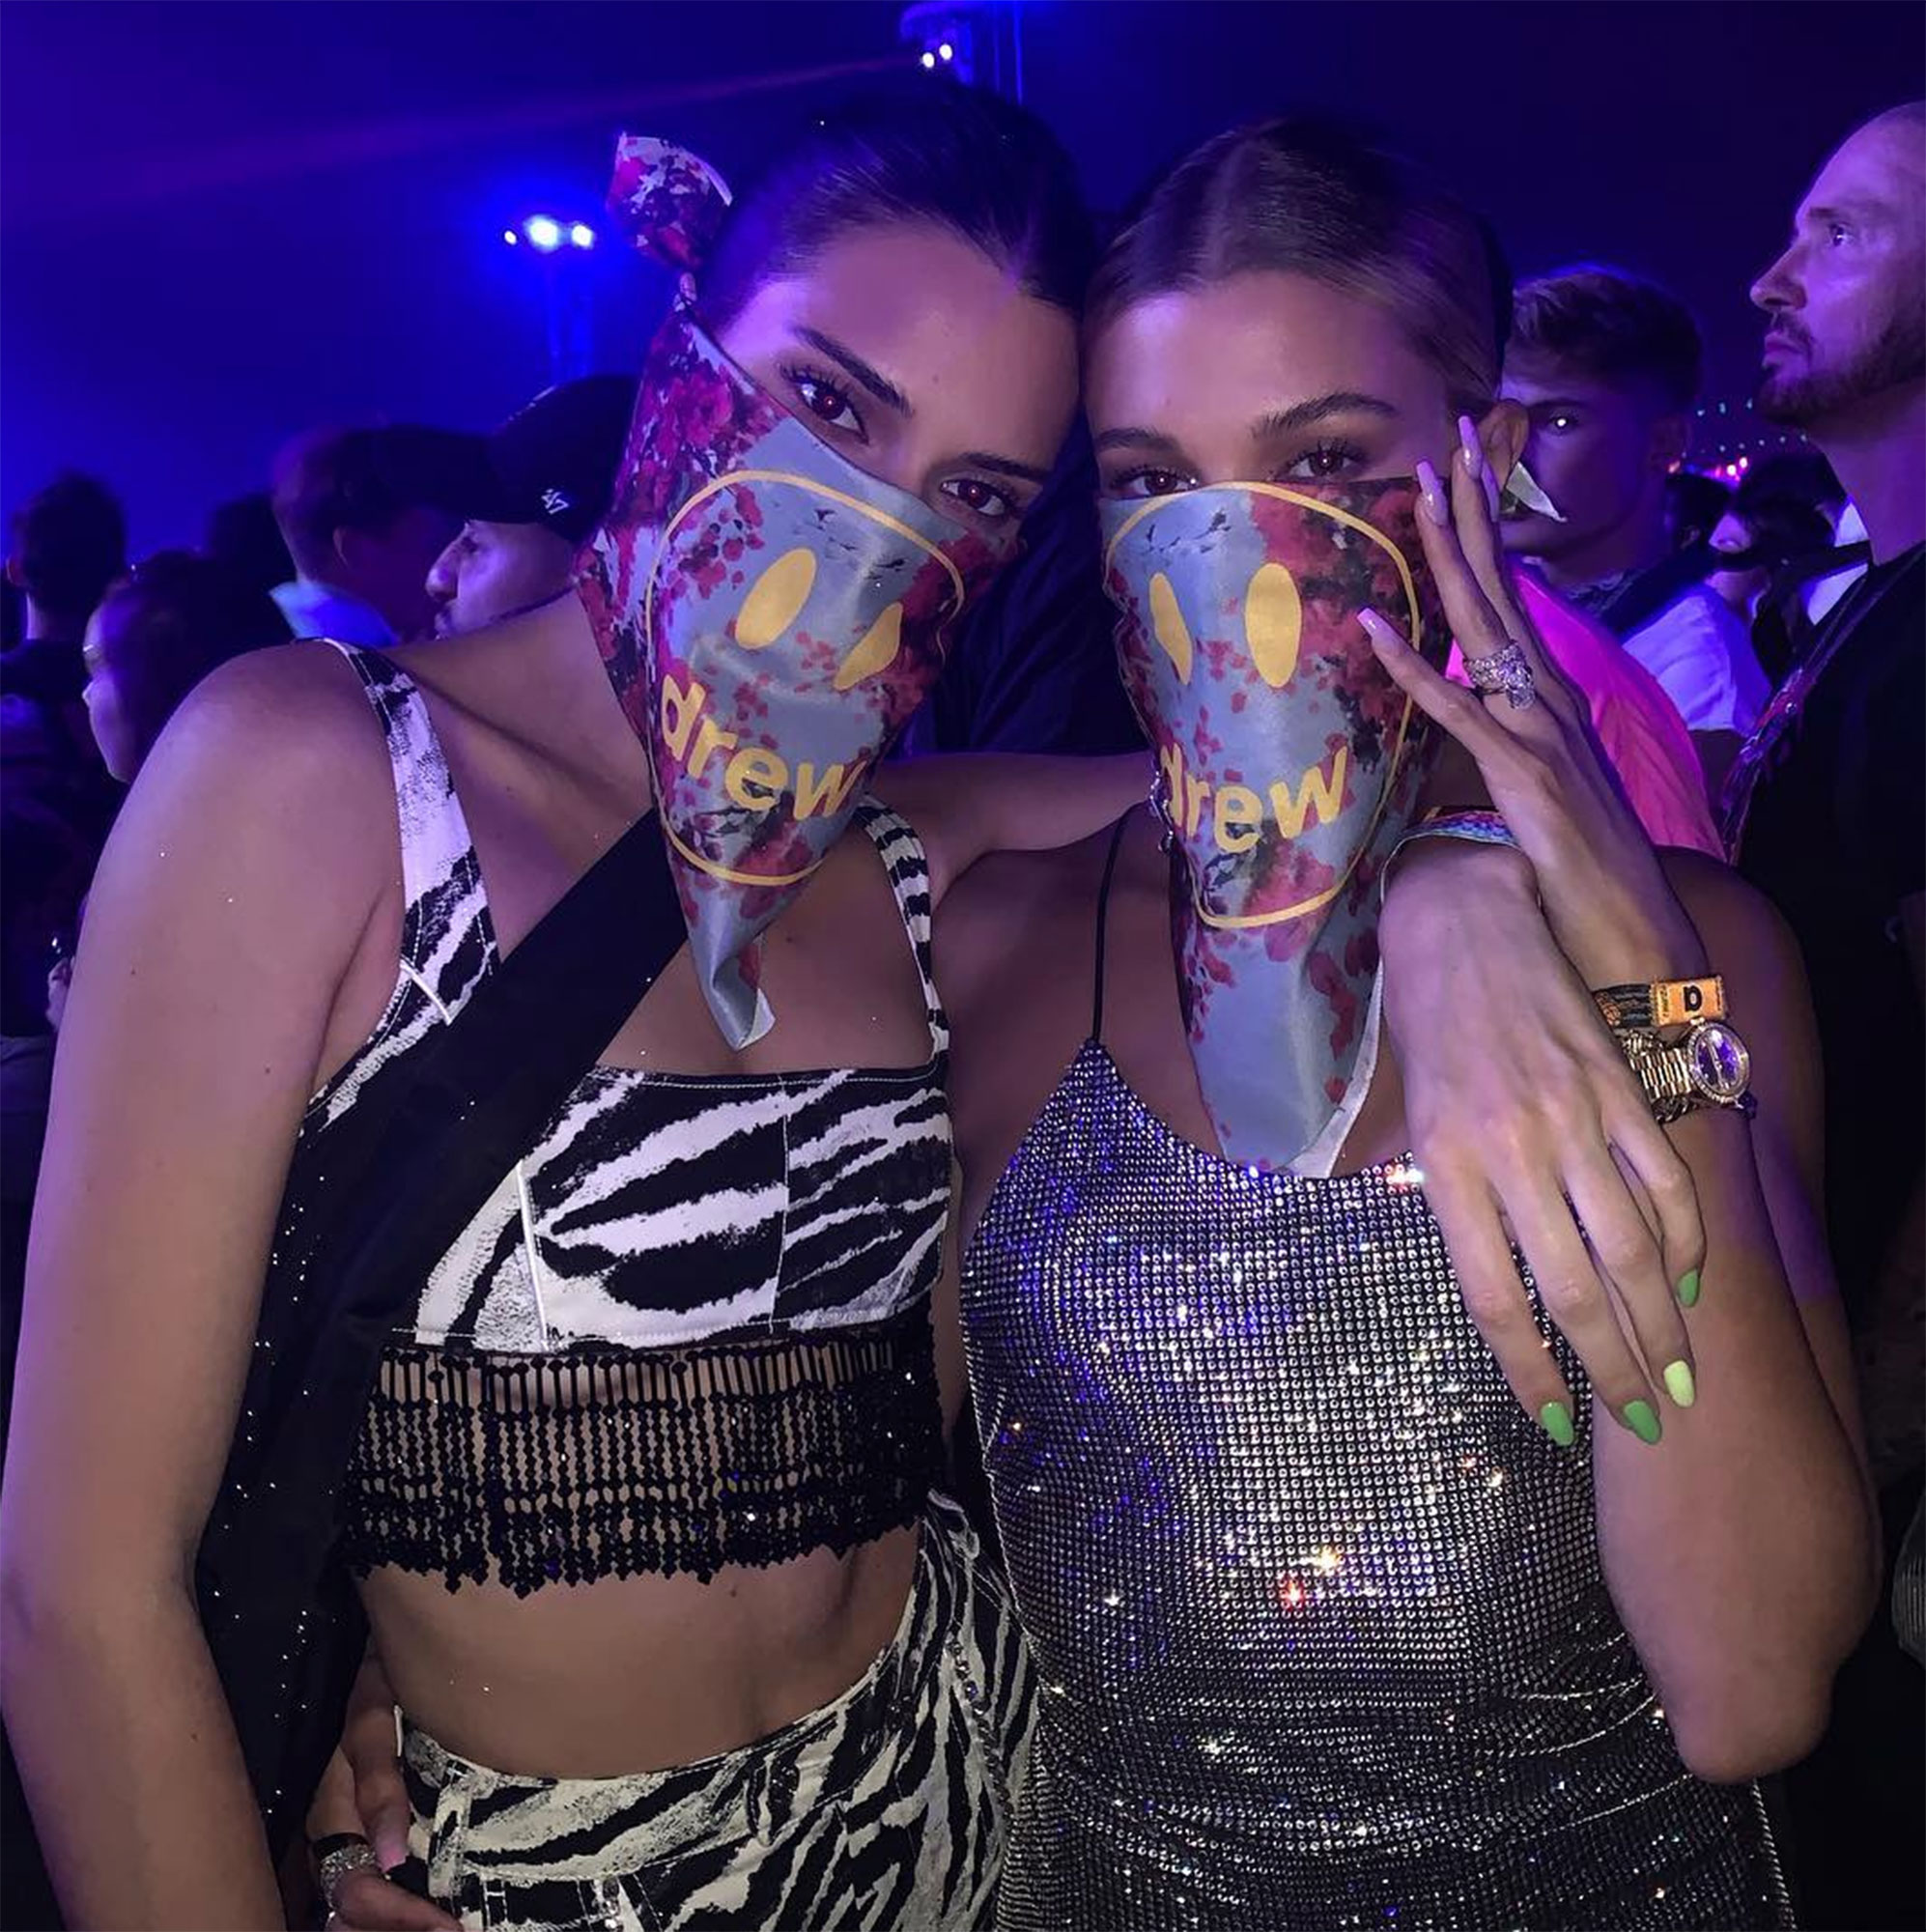 "Hailey Baldwin, Kendall Jenner coachella - ""Gang's back,"" the Drop the Mic host's husband, Justin Bieber , captioned a snap of the model pals donning matching face scarves over glitzy ensembles, with Hailey in a silver sequin dress and Jenner in a two-piece zebra-print getup with beaded tassels."